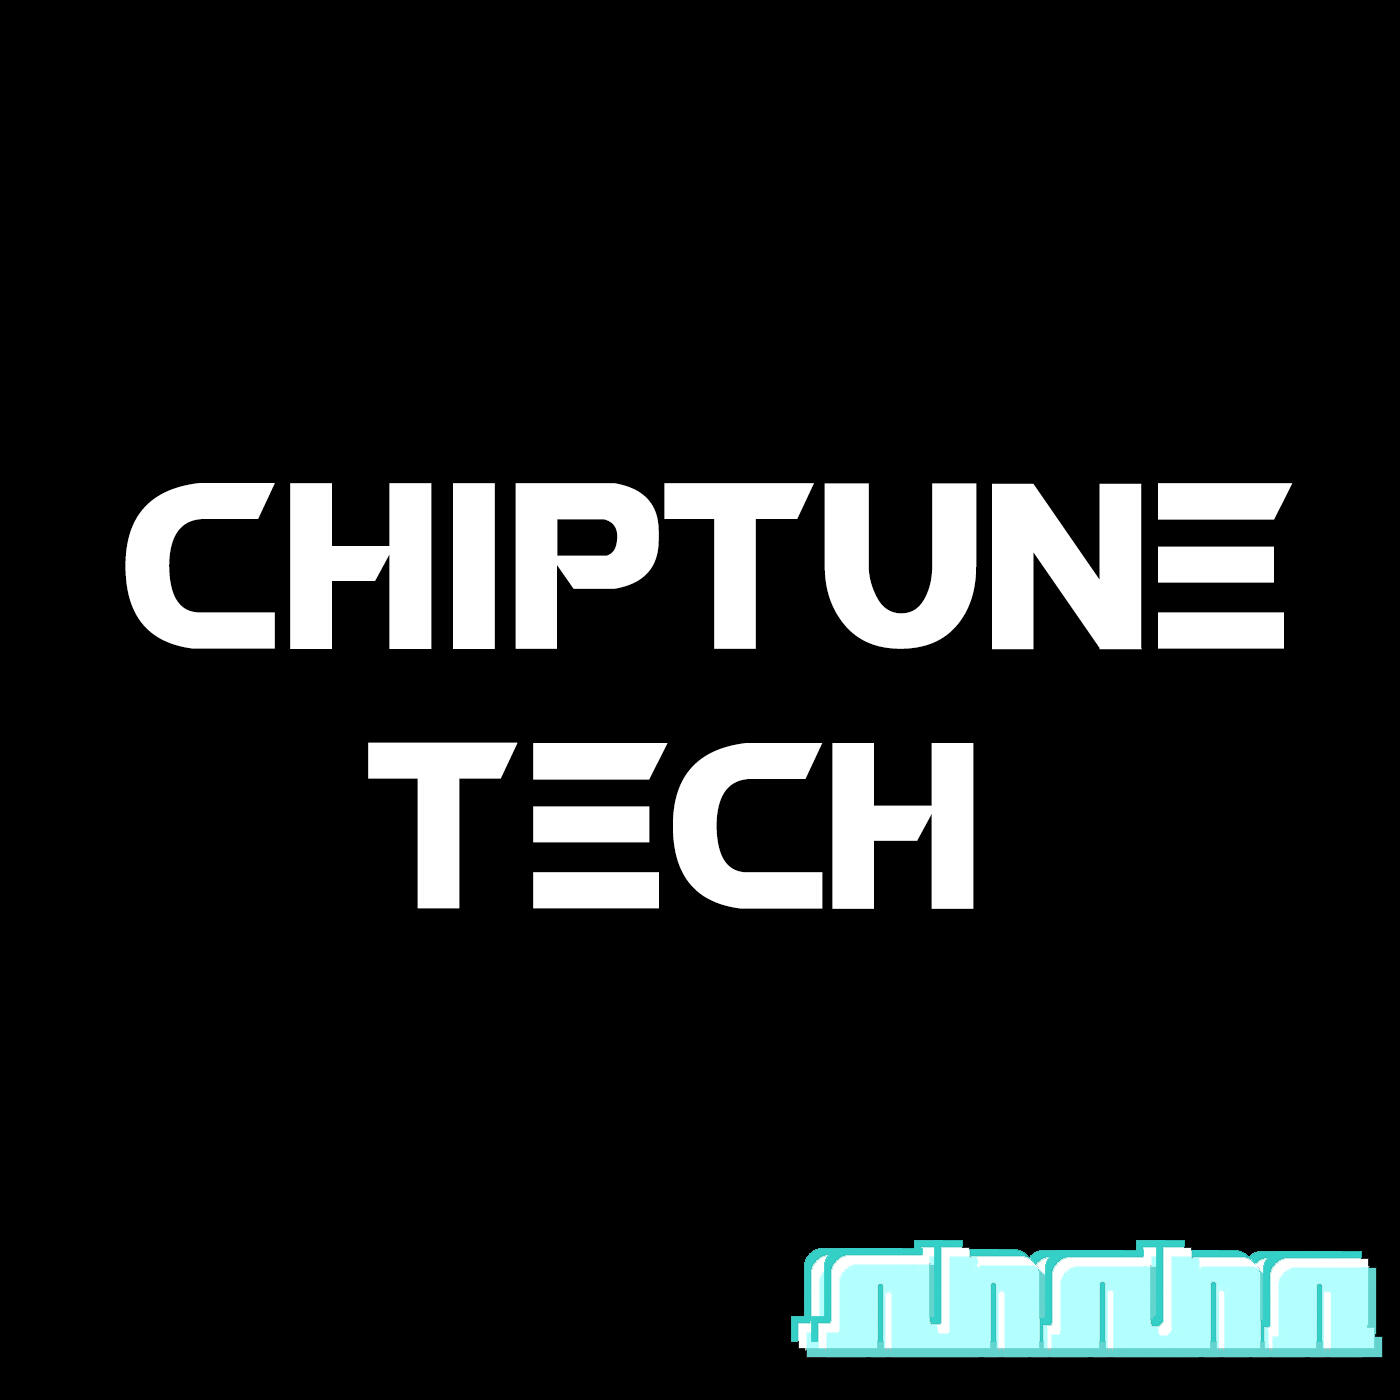 Listen to the Chiptune Tech Episode - MEGA Episode 8: Gameboy Pocket